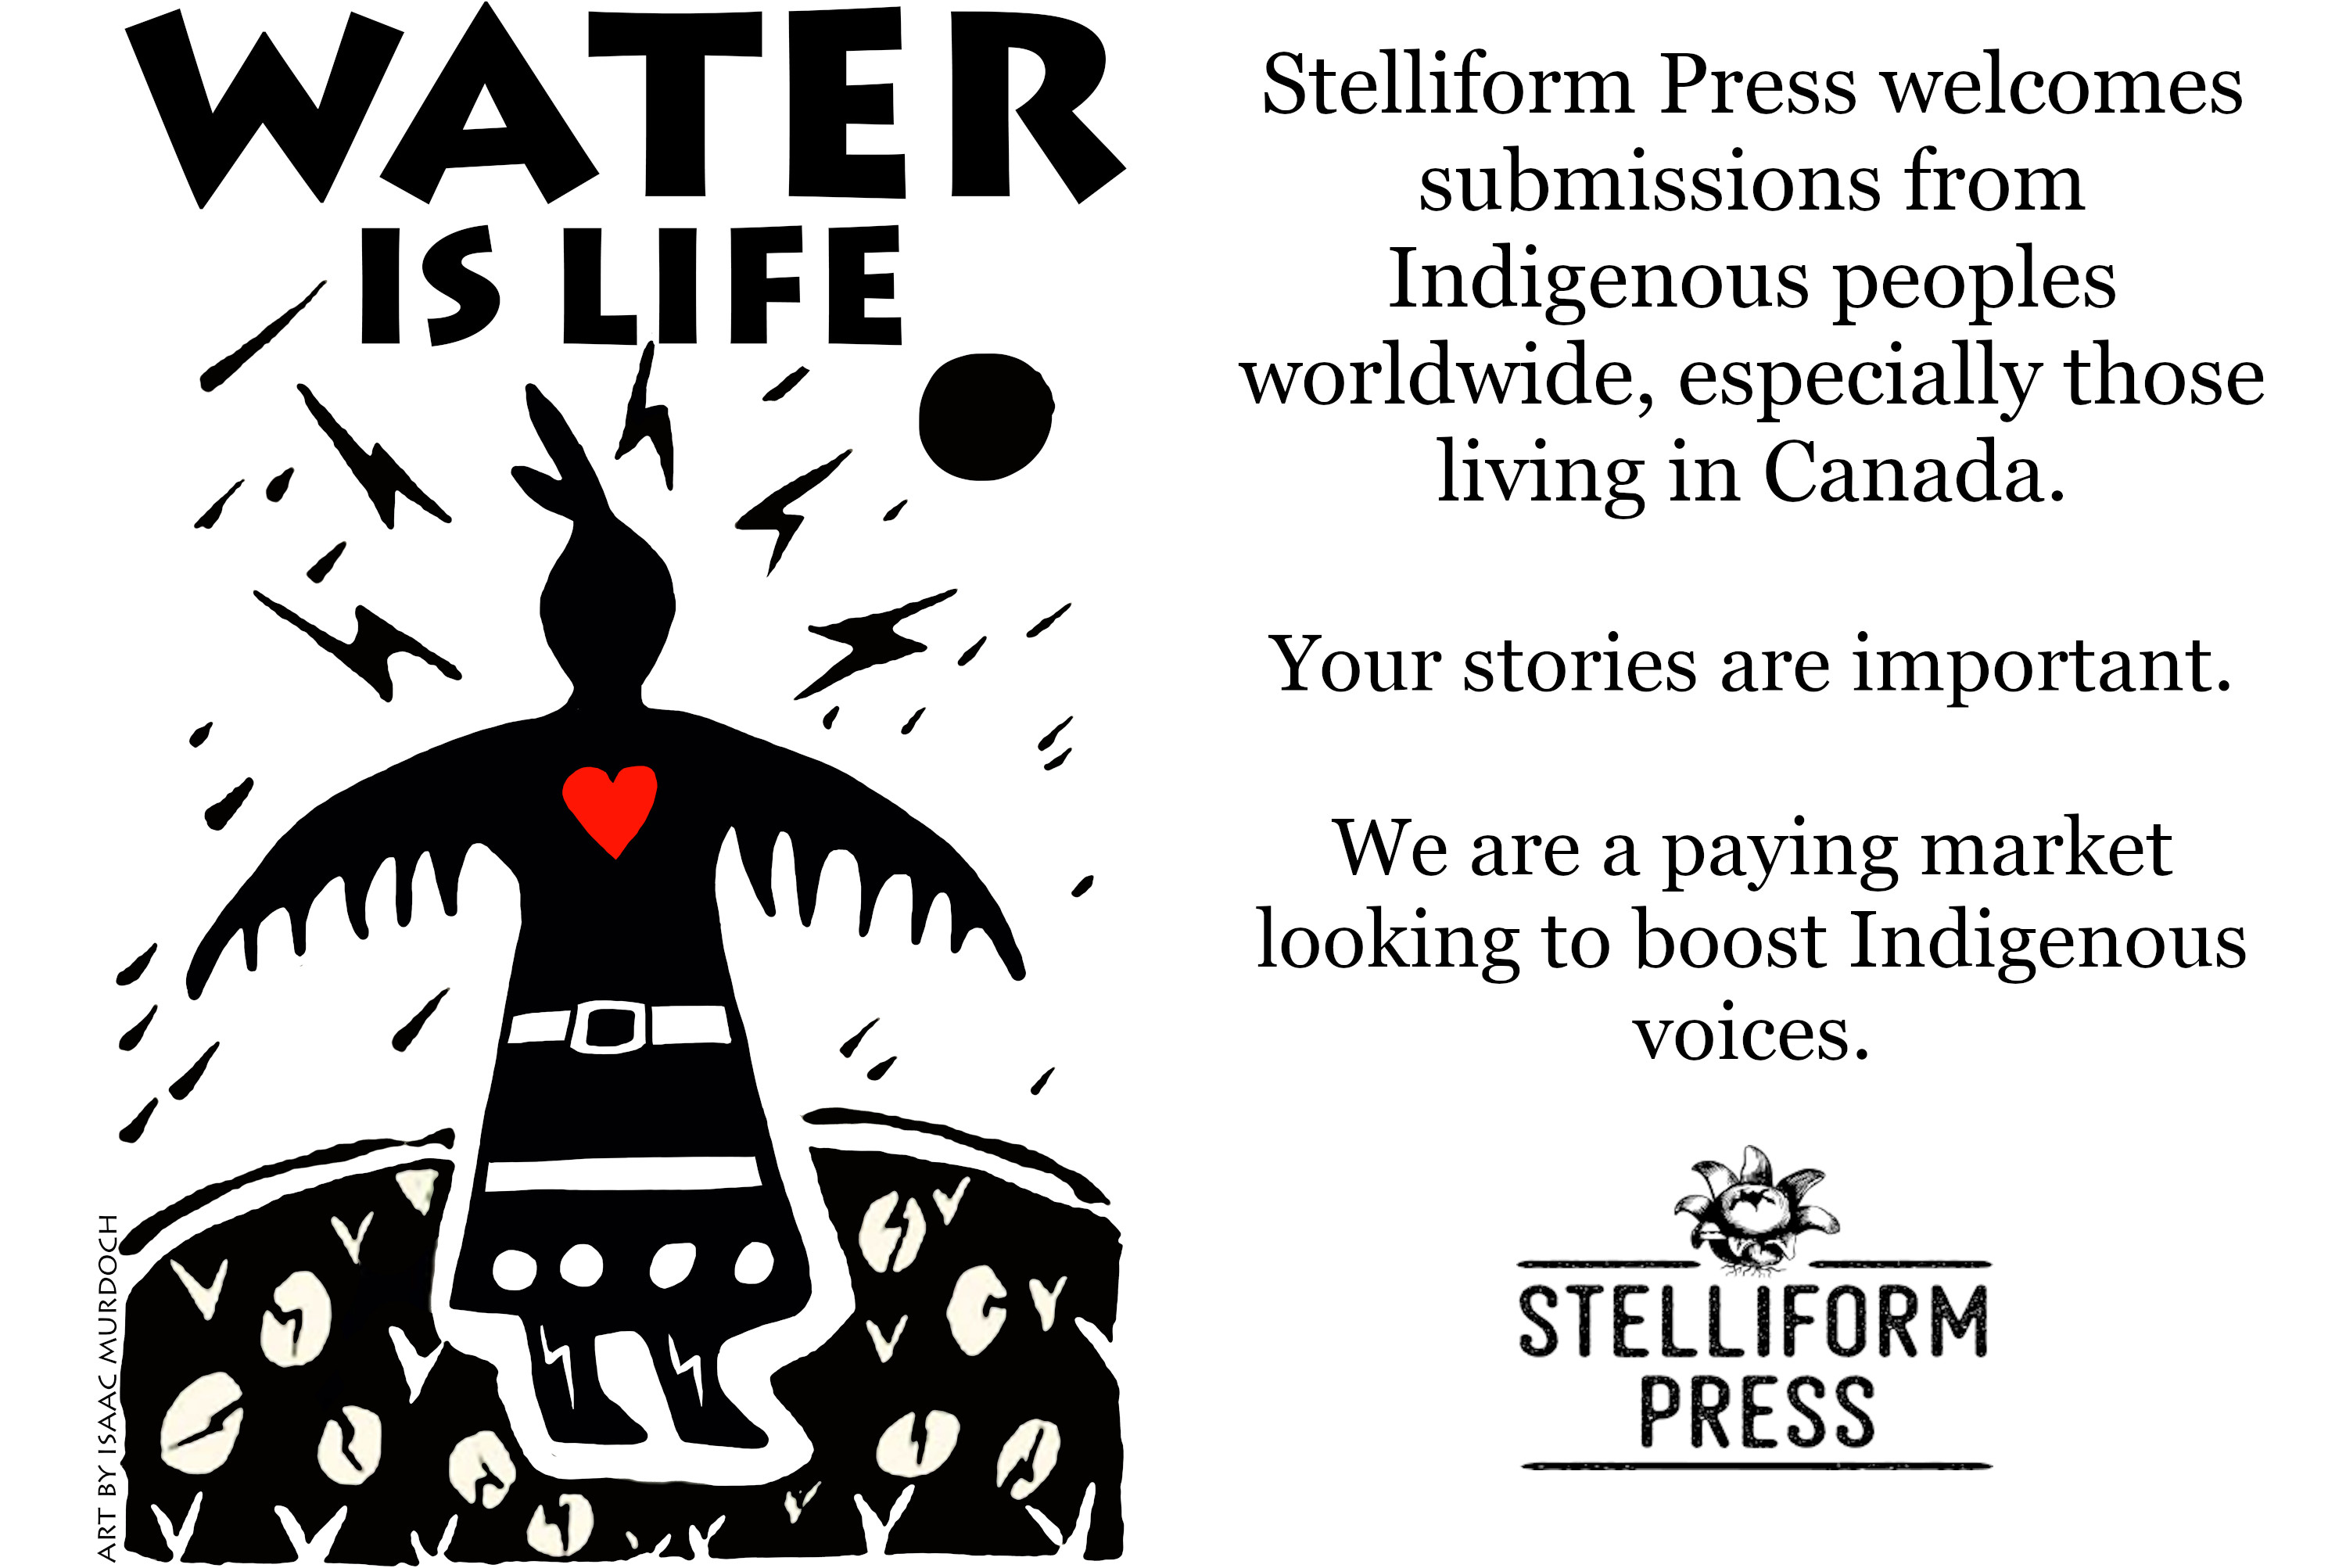 Flyer calling for submissions from Indigenous writers and creators